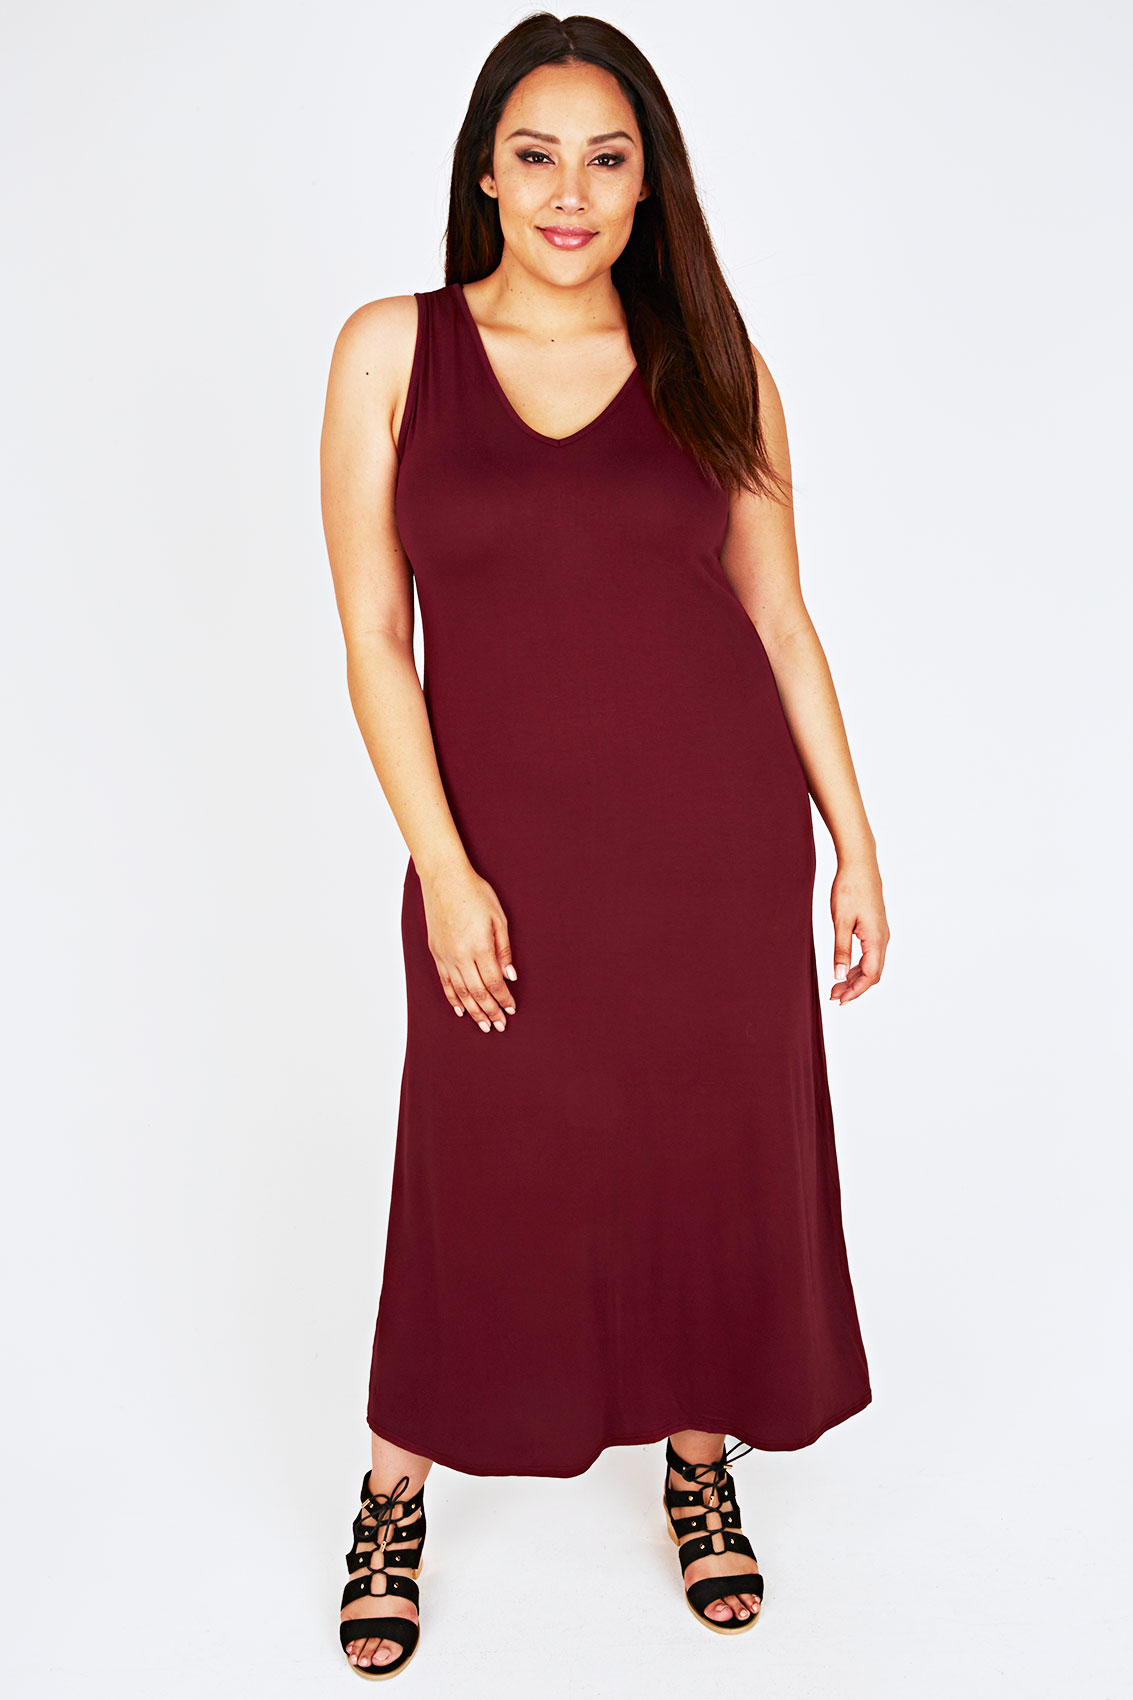 Best Petite Plus Size Clothing